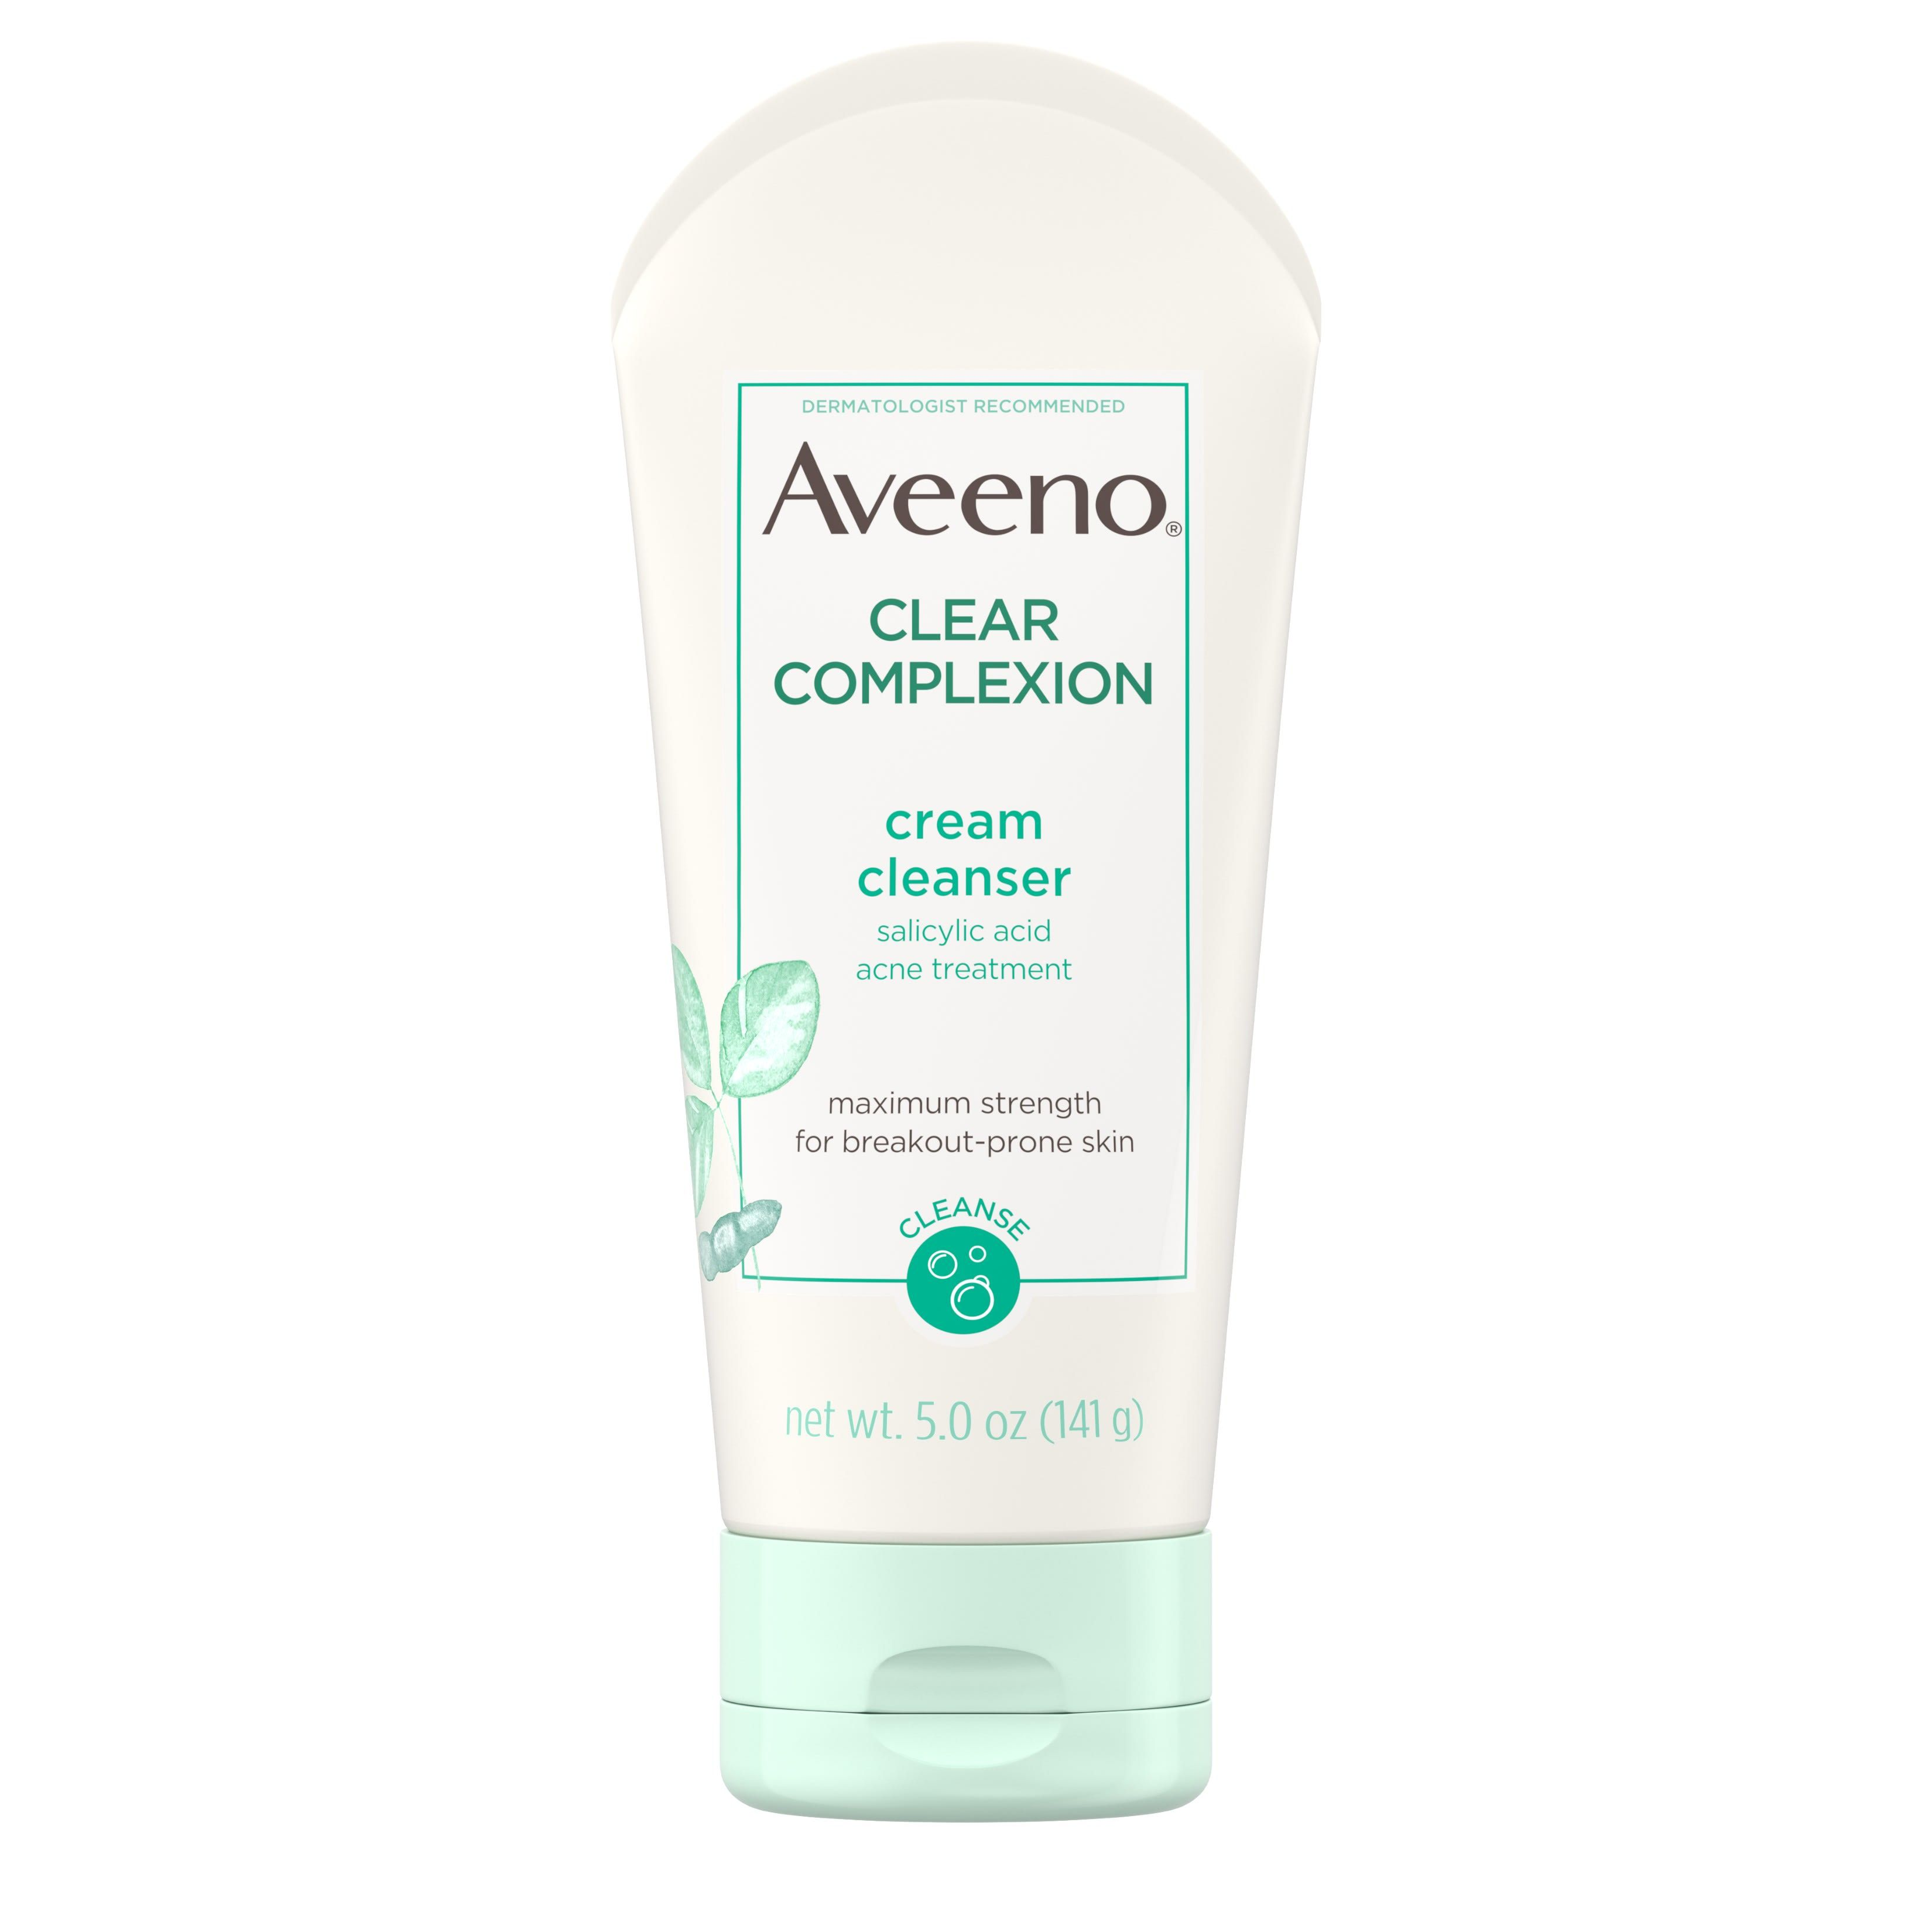 Aveeno Clear Complexion Cream Cleanser with Salicylic Acid, 5.0 oz